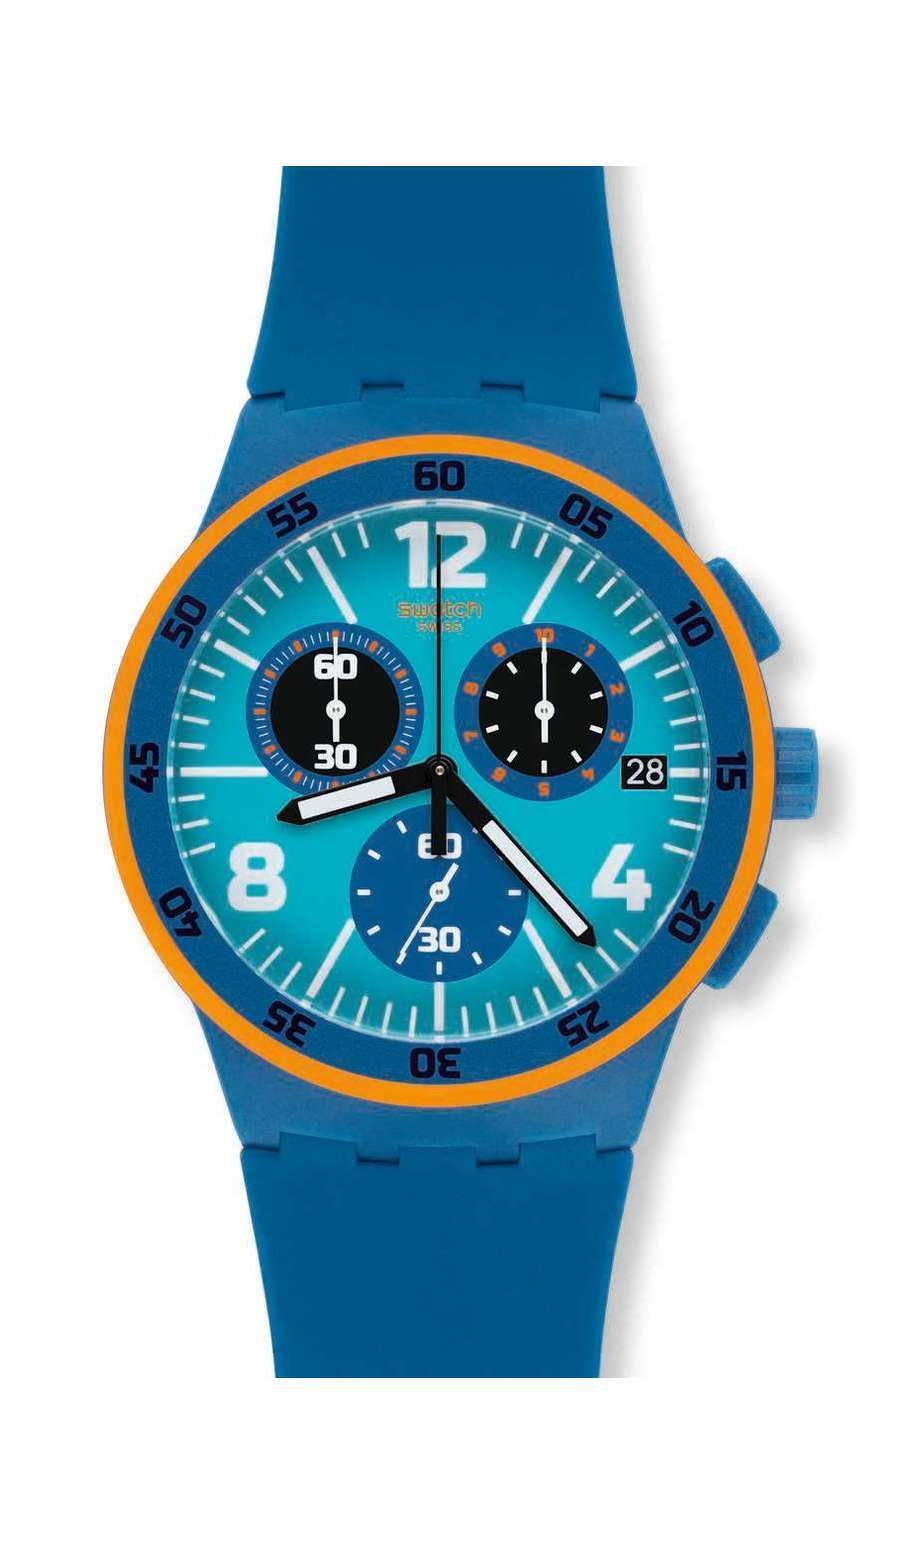 Swatch - CAPANNO - 1